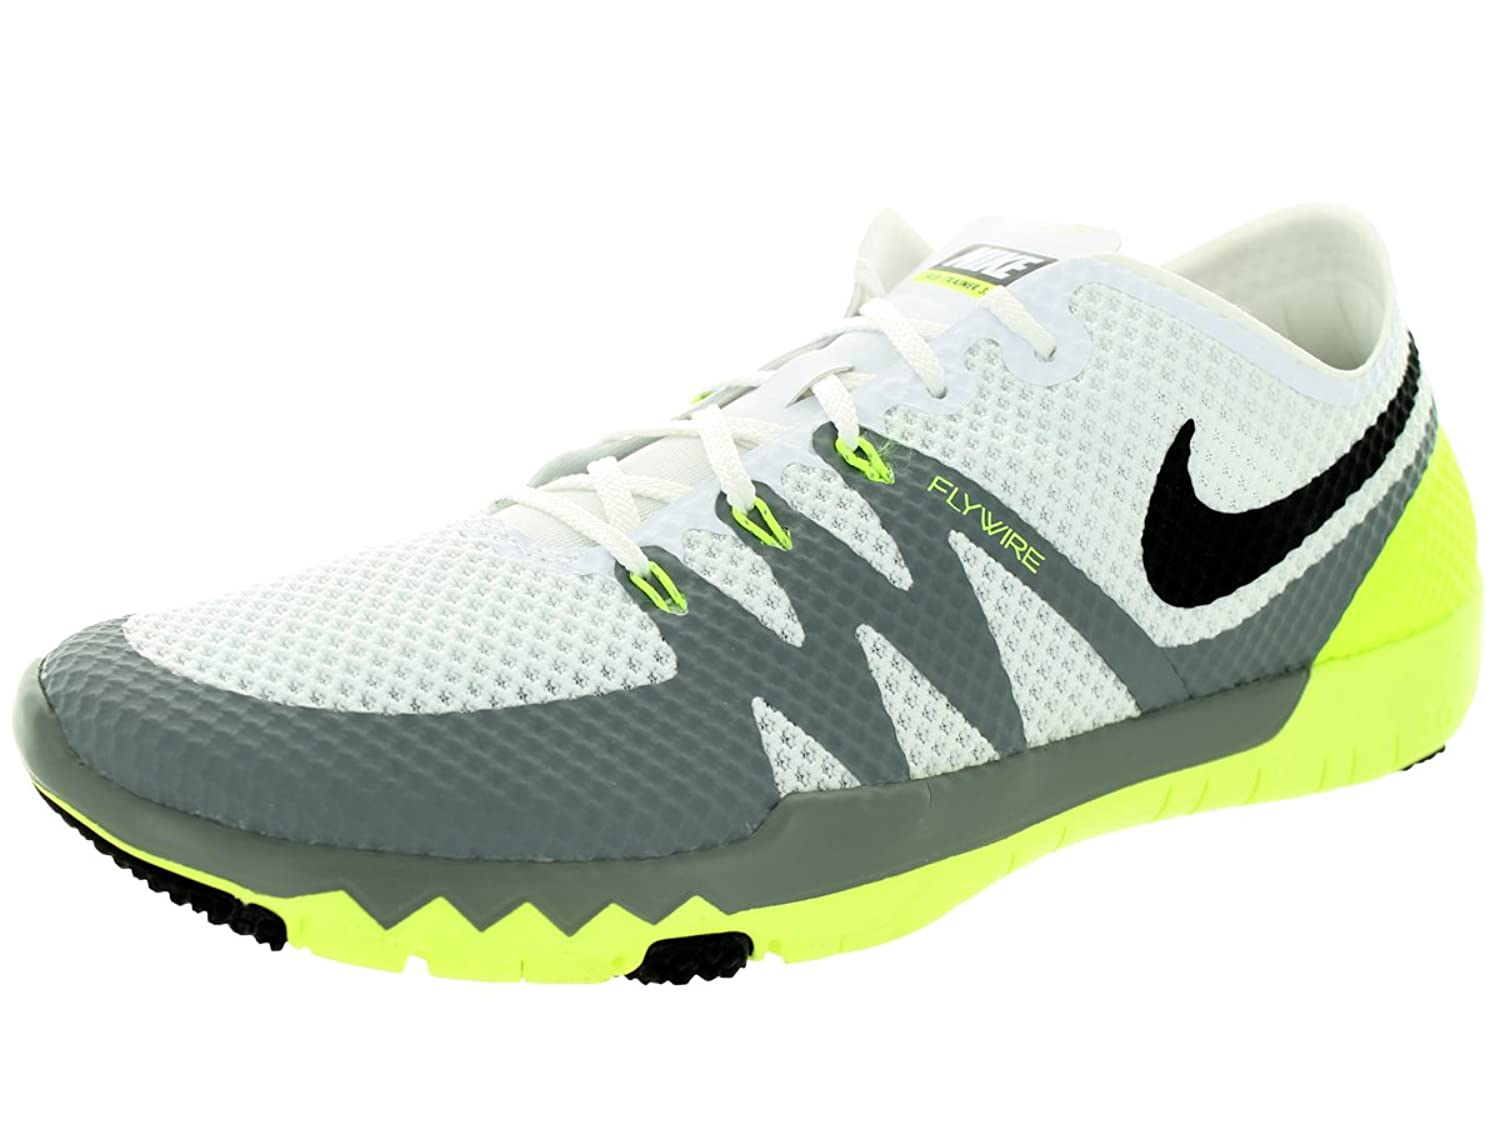 nike free trainer 3.0 v3 training shoes - ss15 restaurant